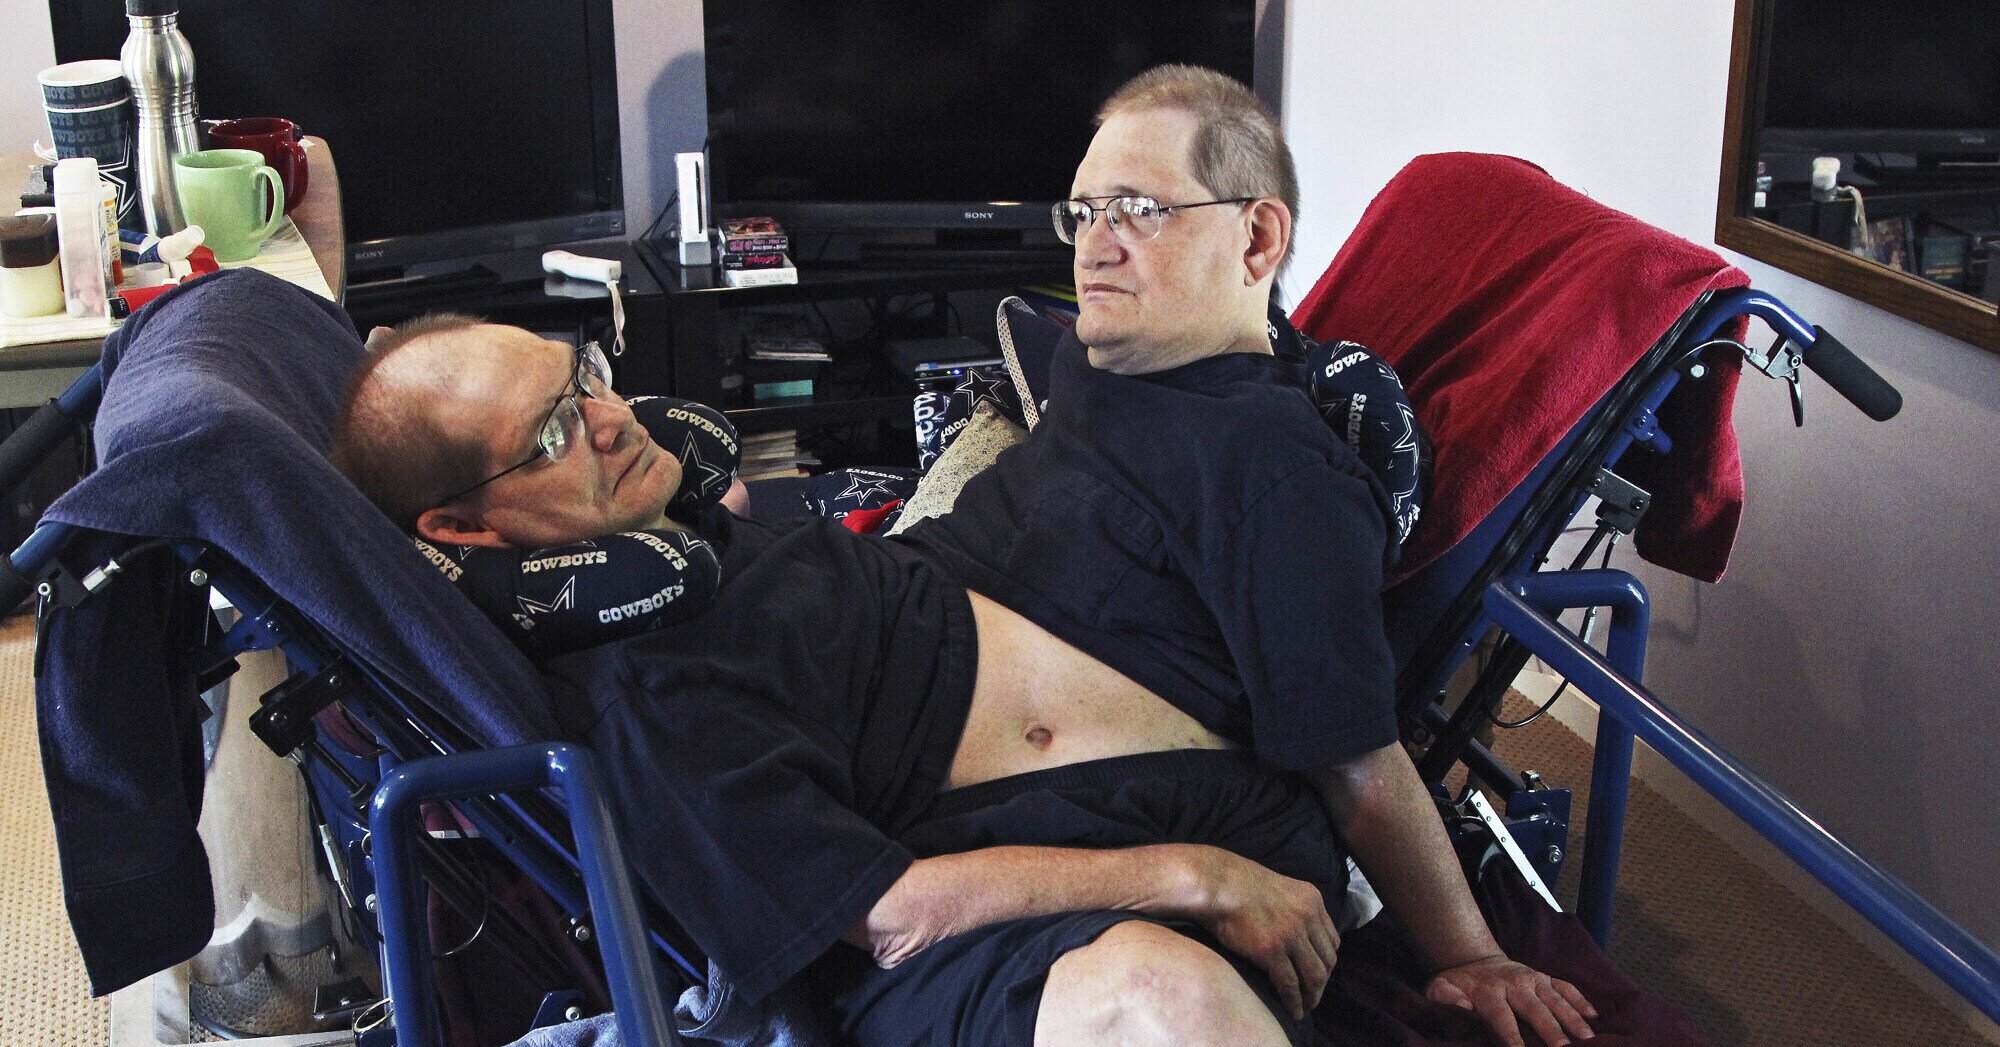 Longest-Surviving Conjoined Twins Die at 68: 'They Couldn't Ask for Anything More,' Says Brother